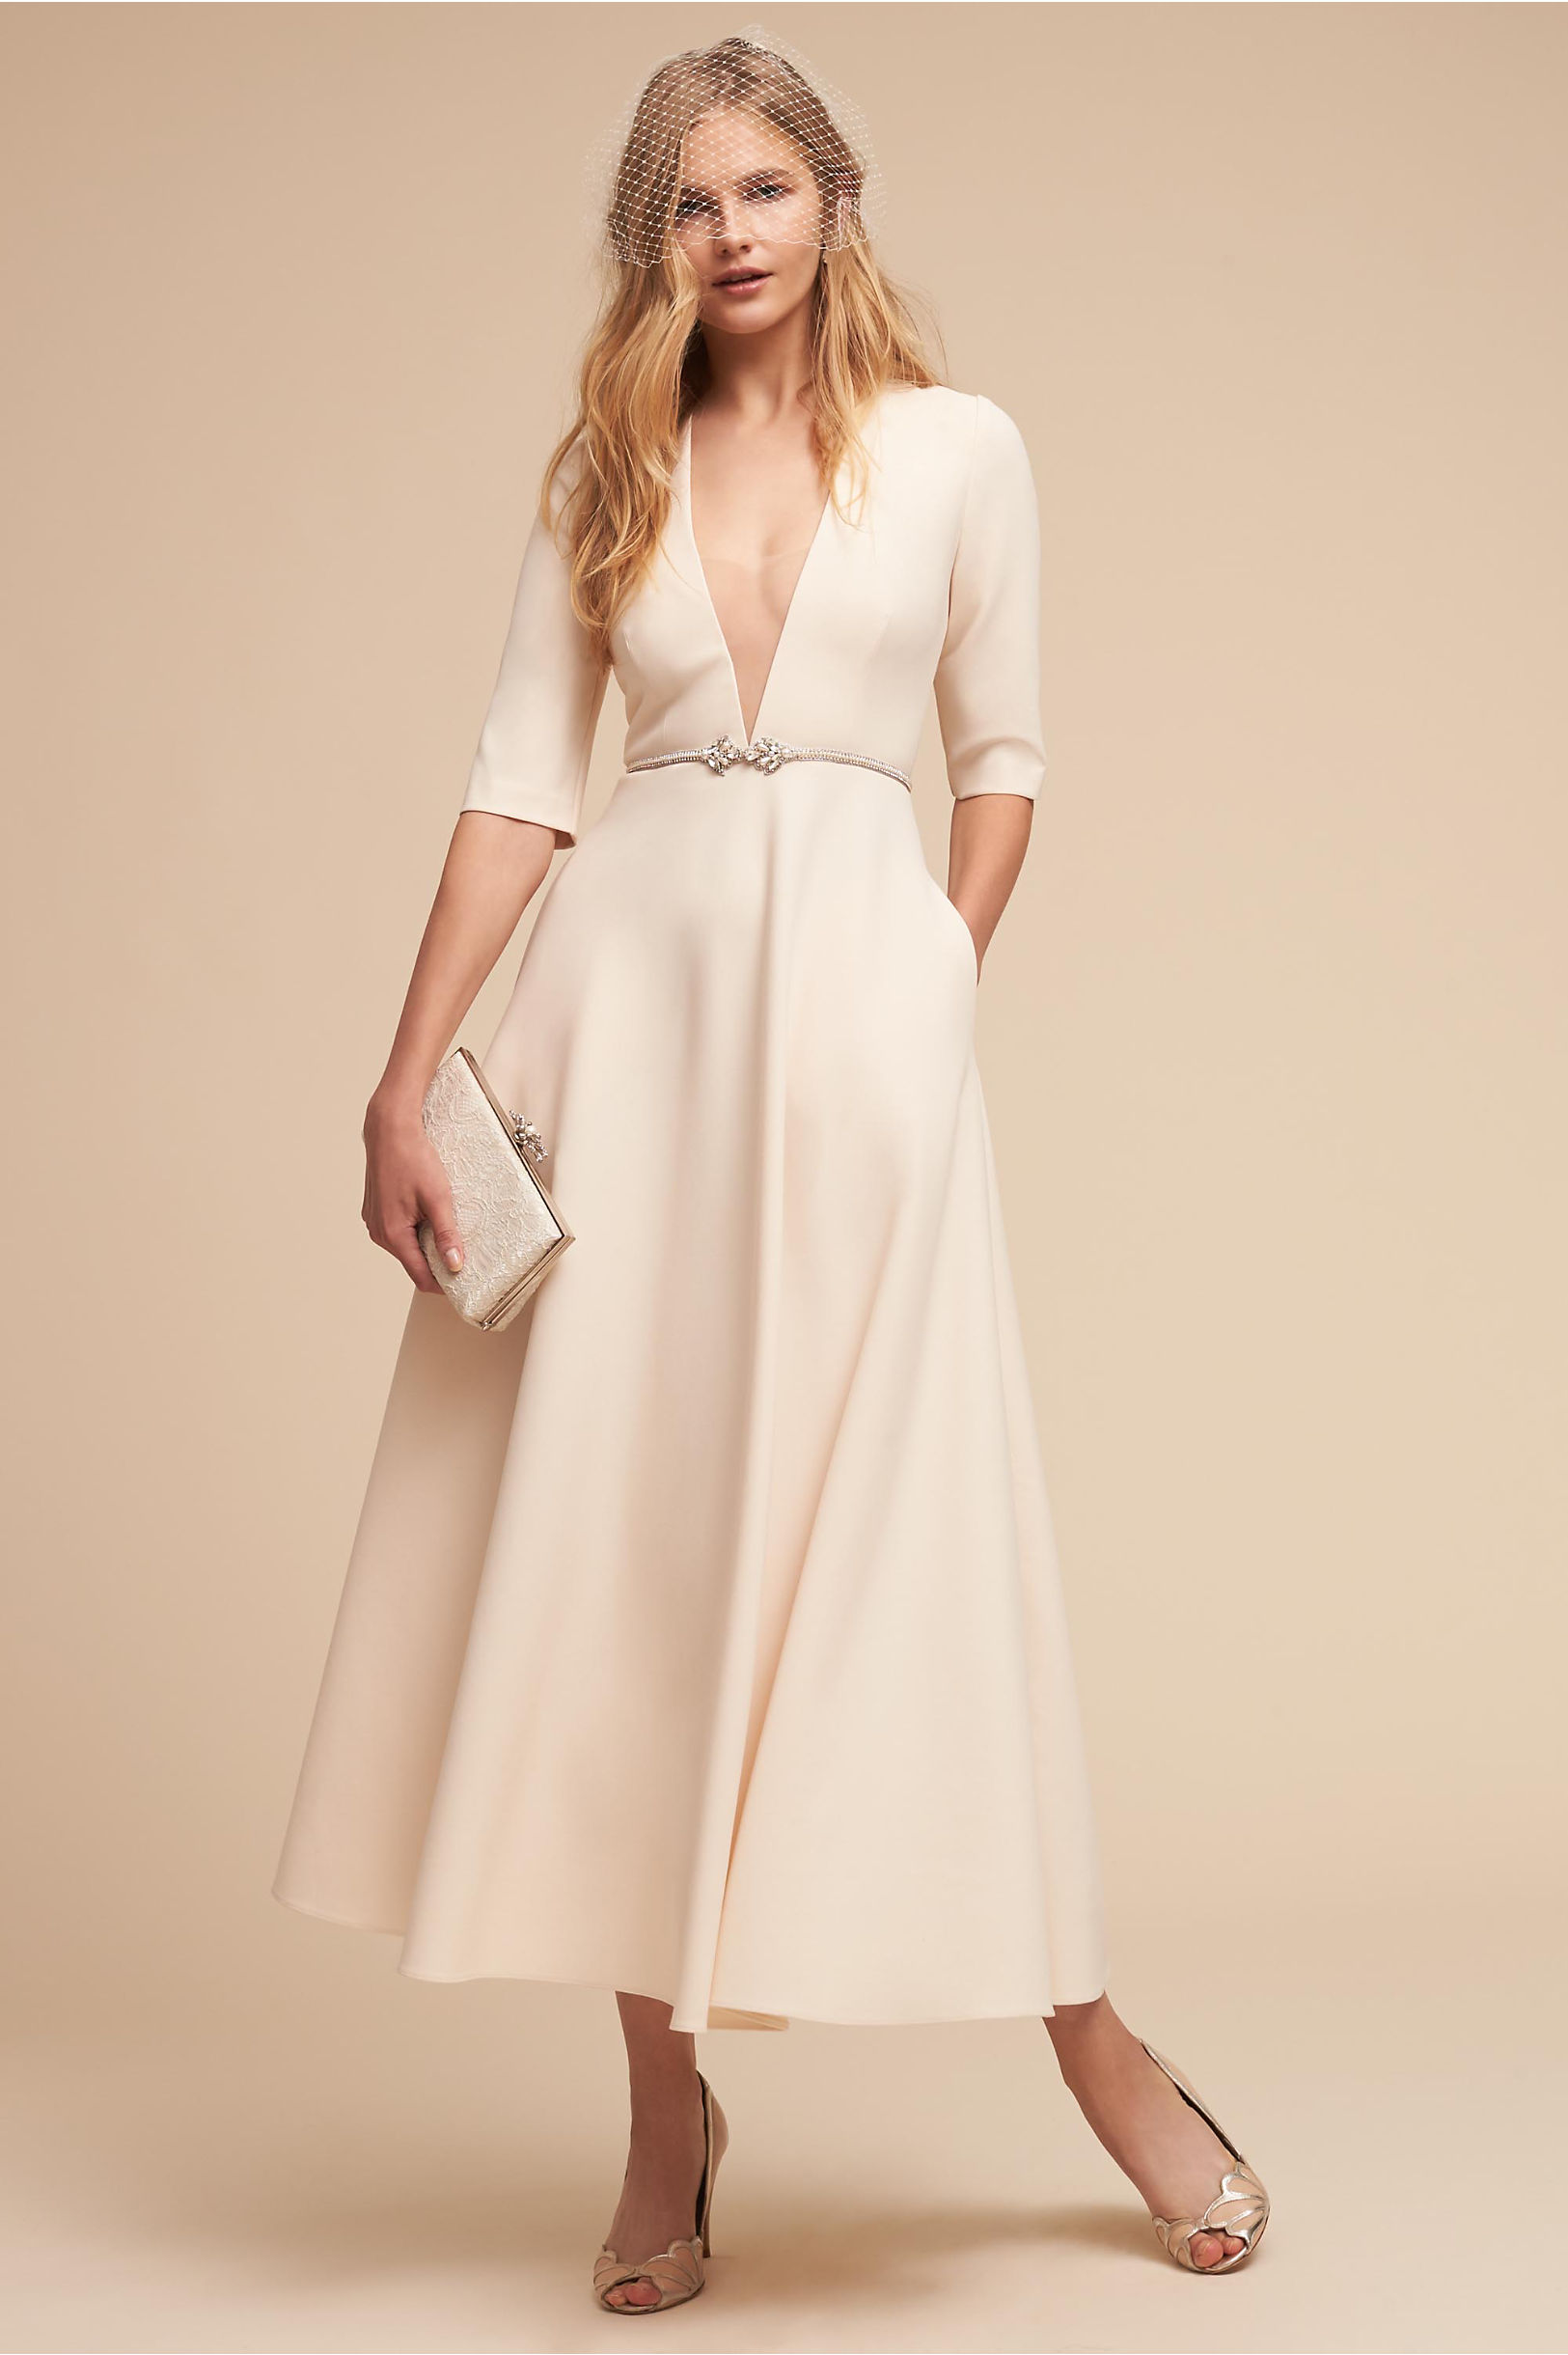 Kennedy tea length a line wedding dress v neck pockets jill jill stuart bhldn spring 2018